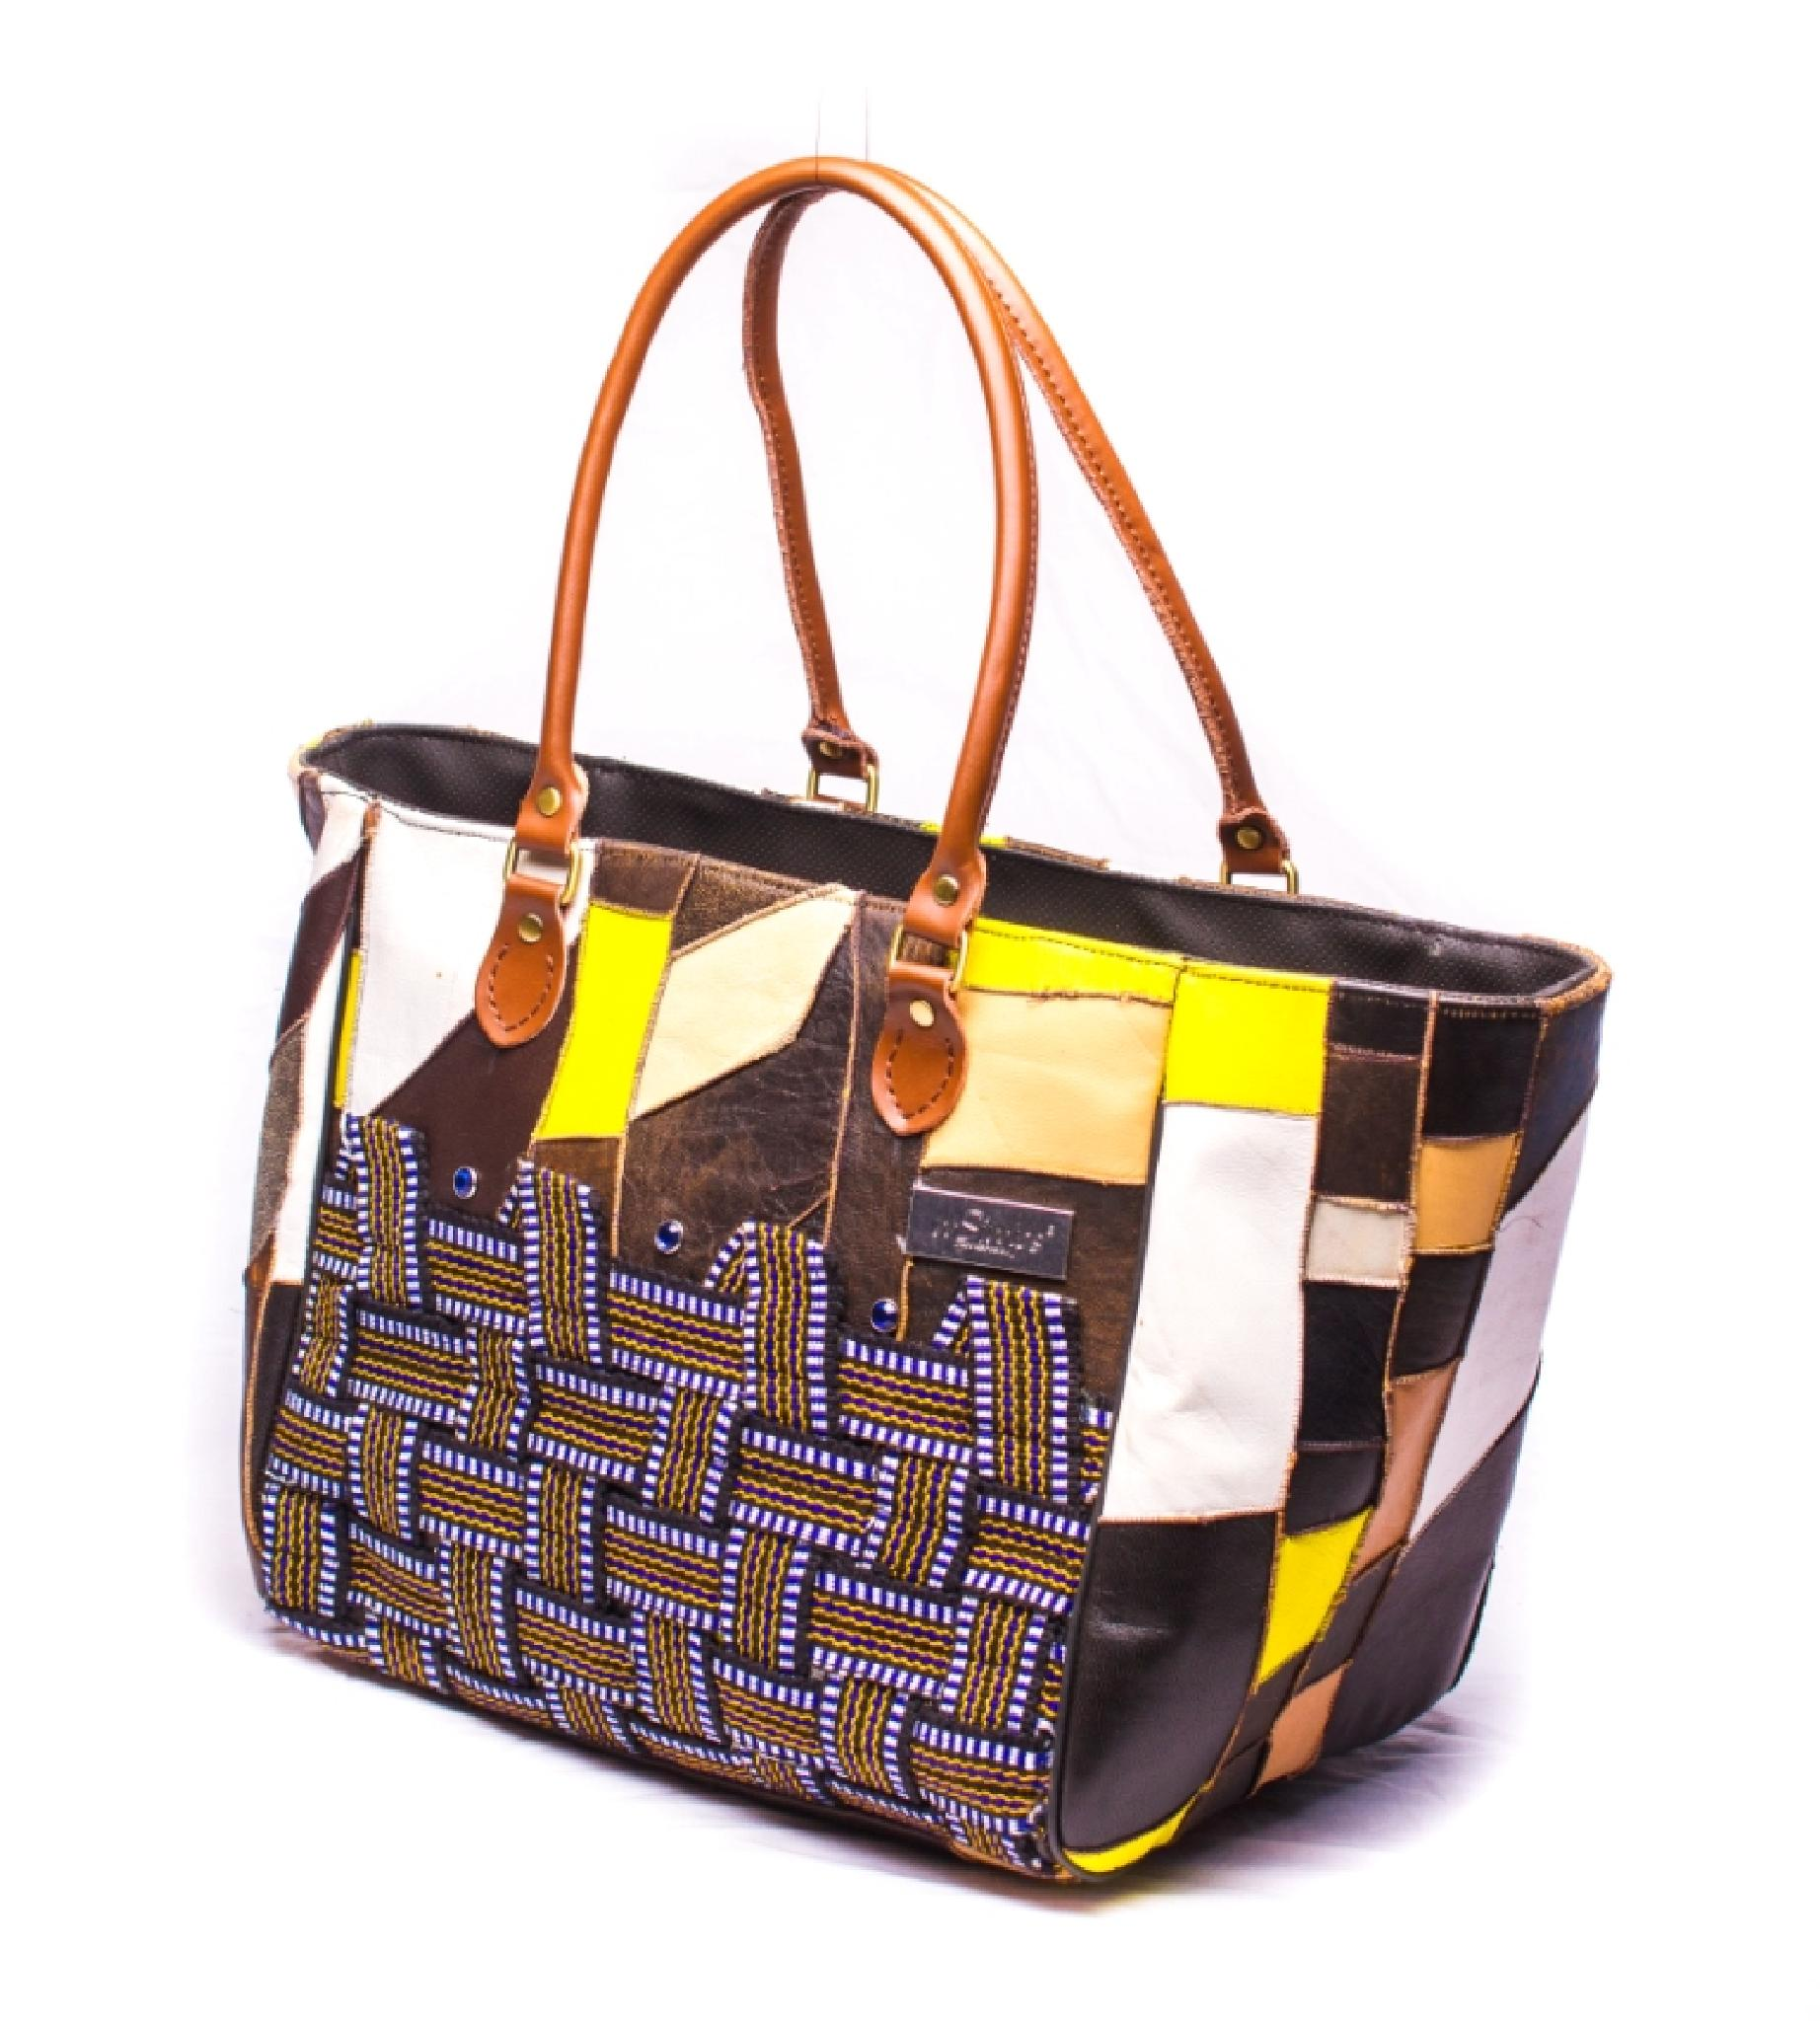 Handmade bags by Forson Afutu Photography